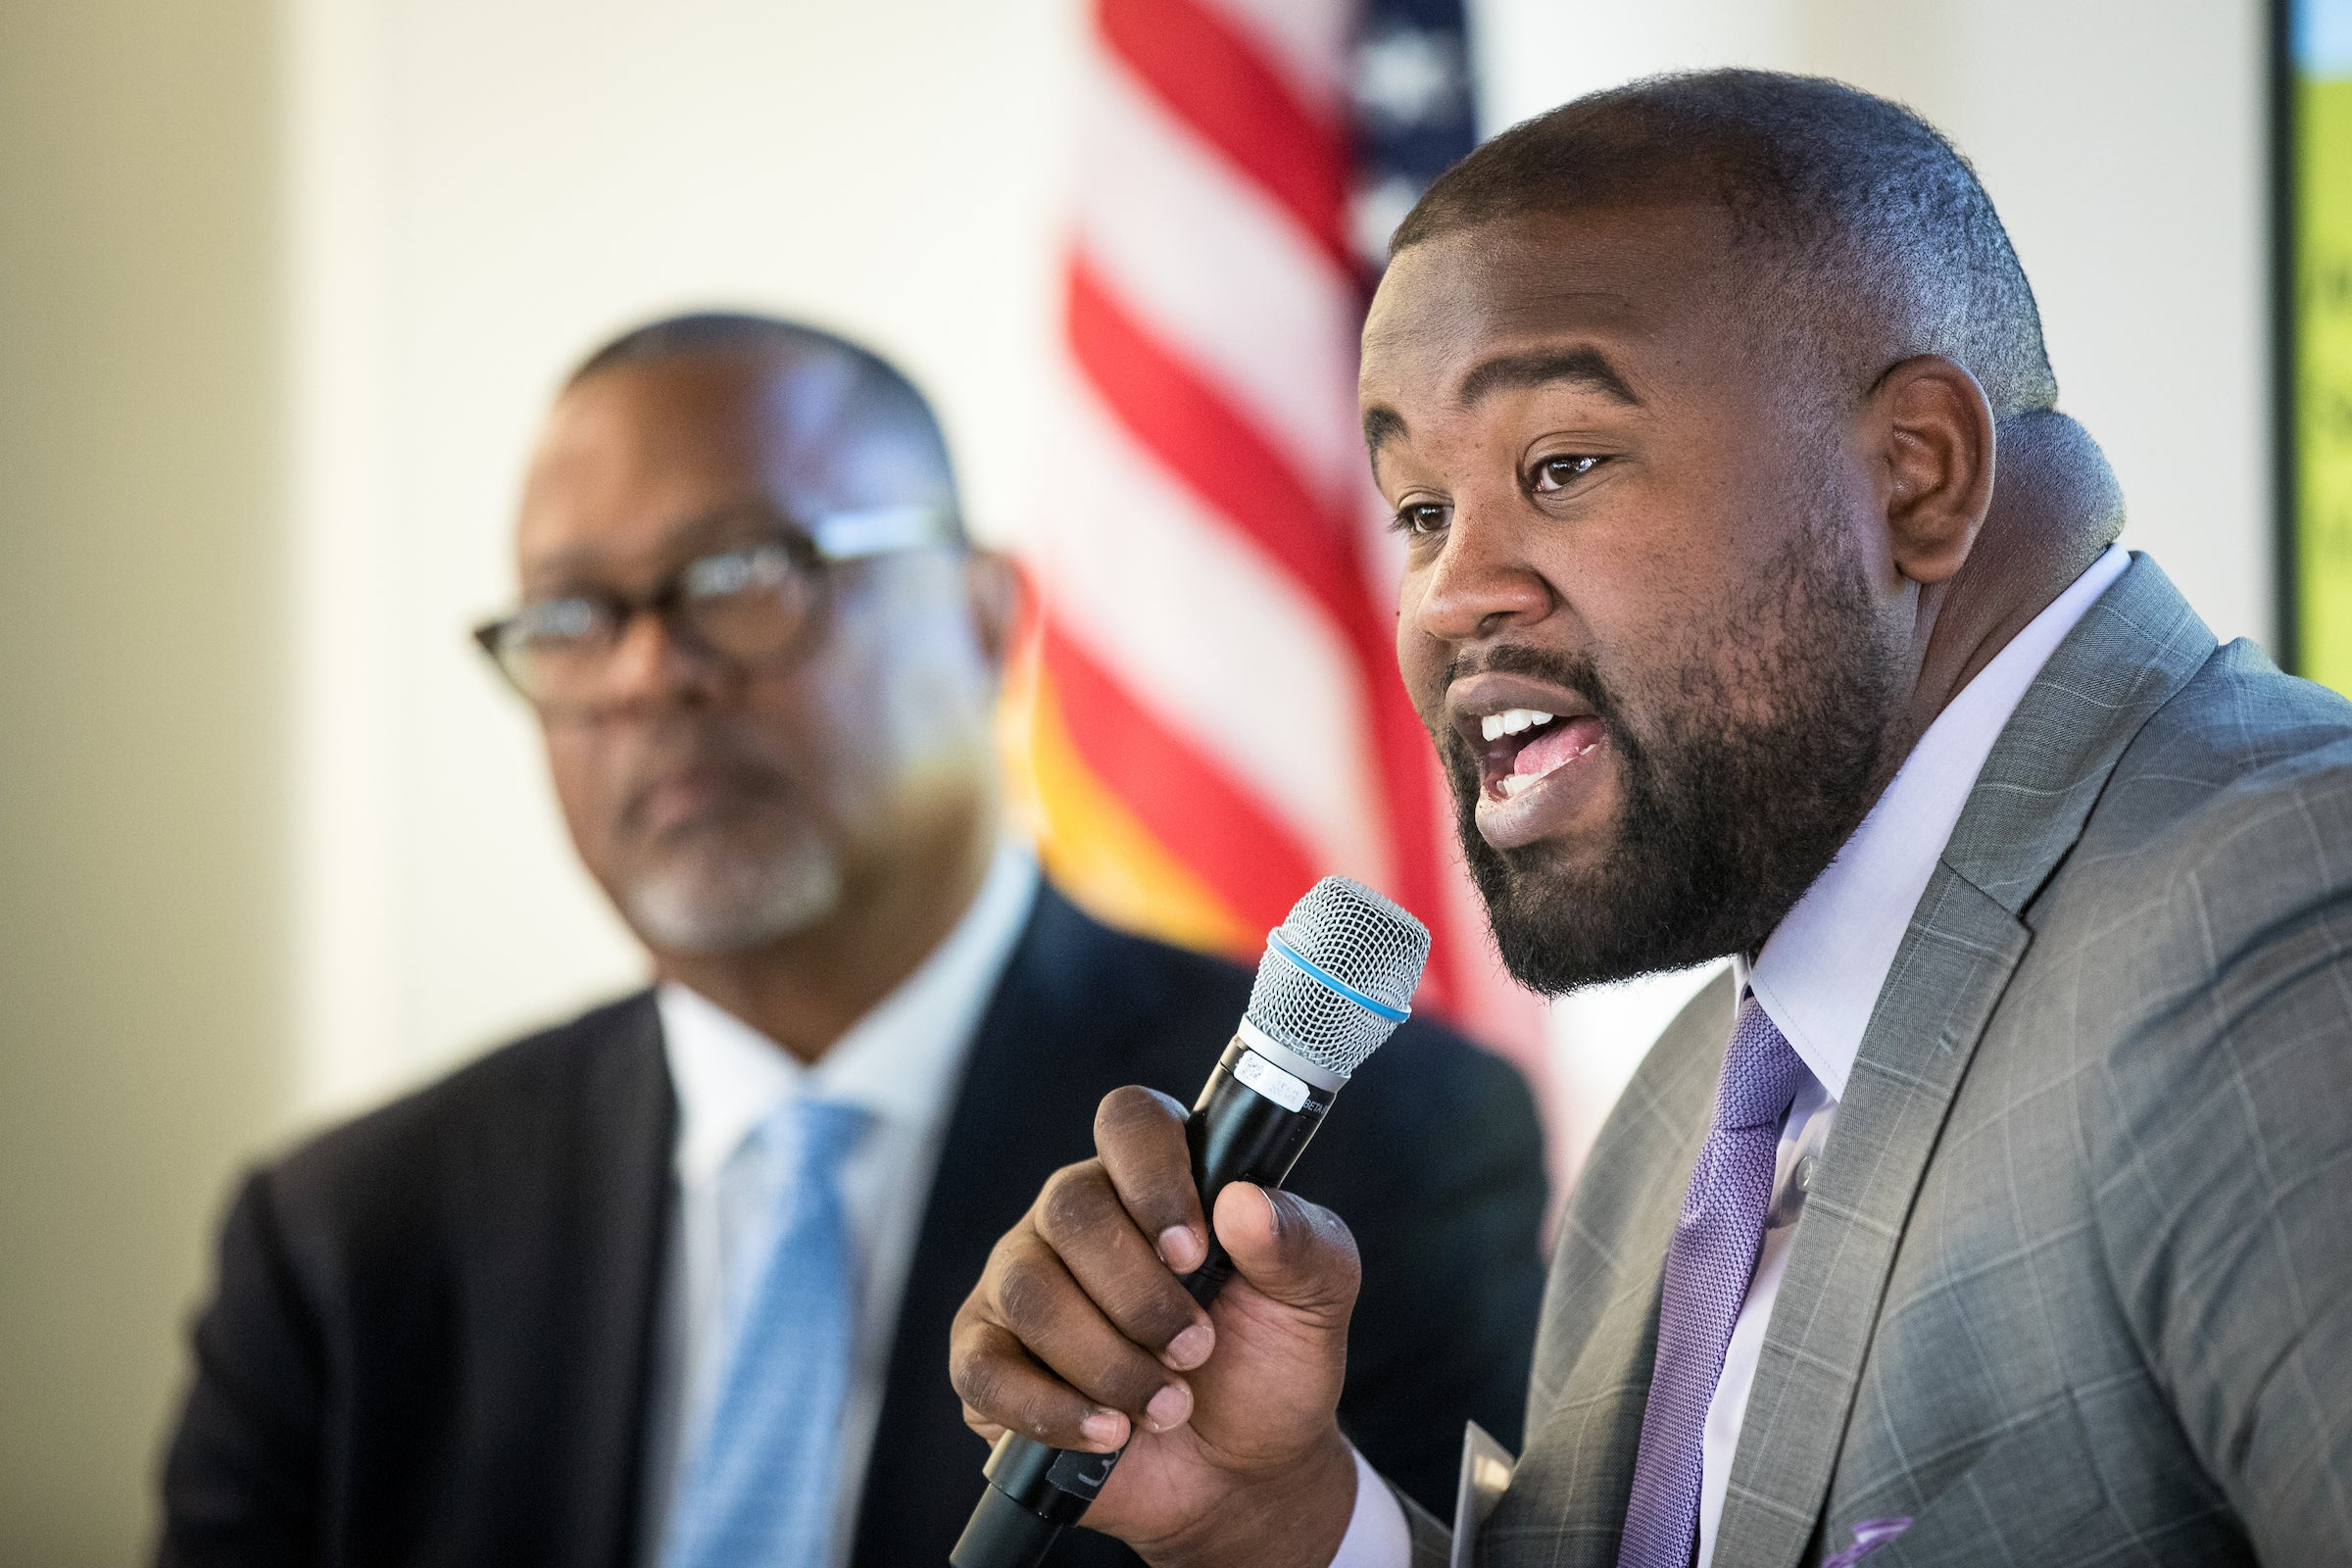 Retired NFL player Jacques McClendon at the ASU Barrett and OConnor Washington Center